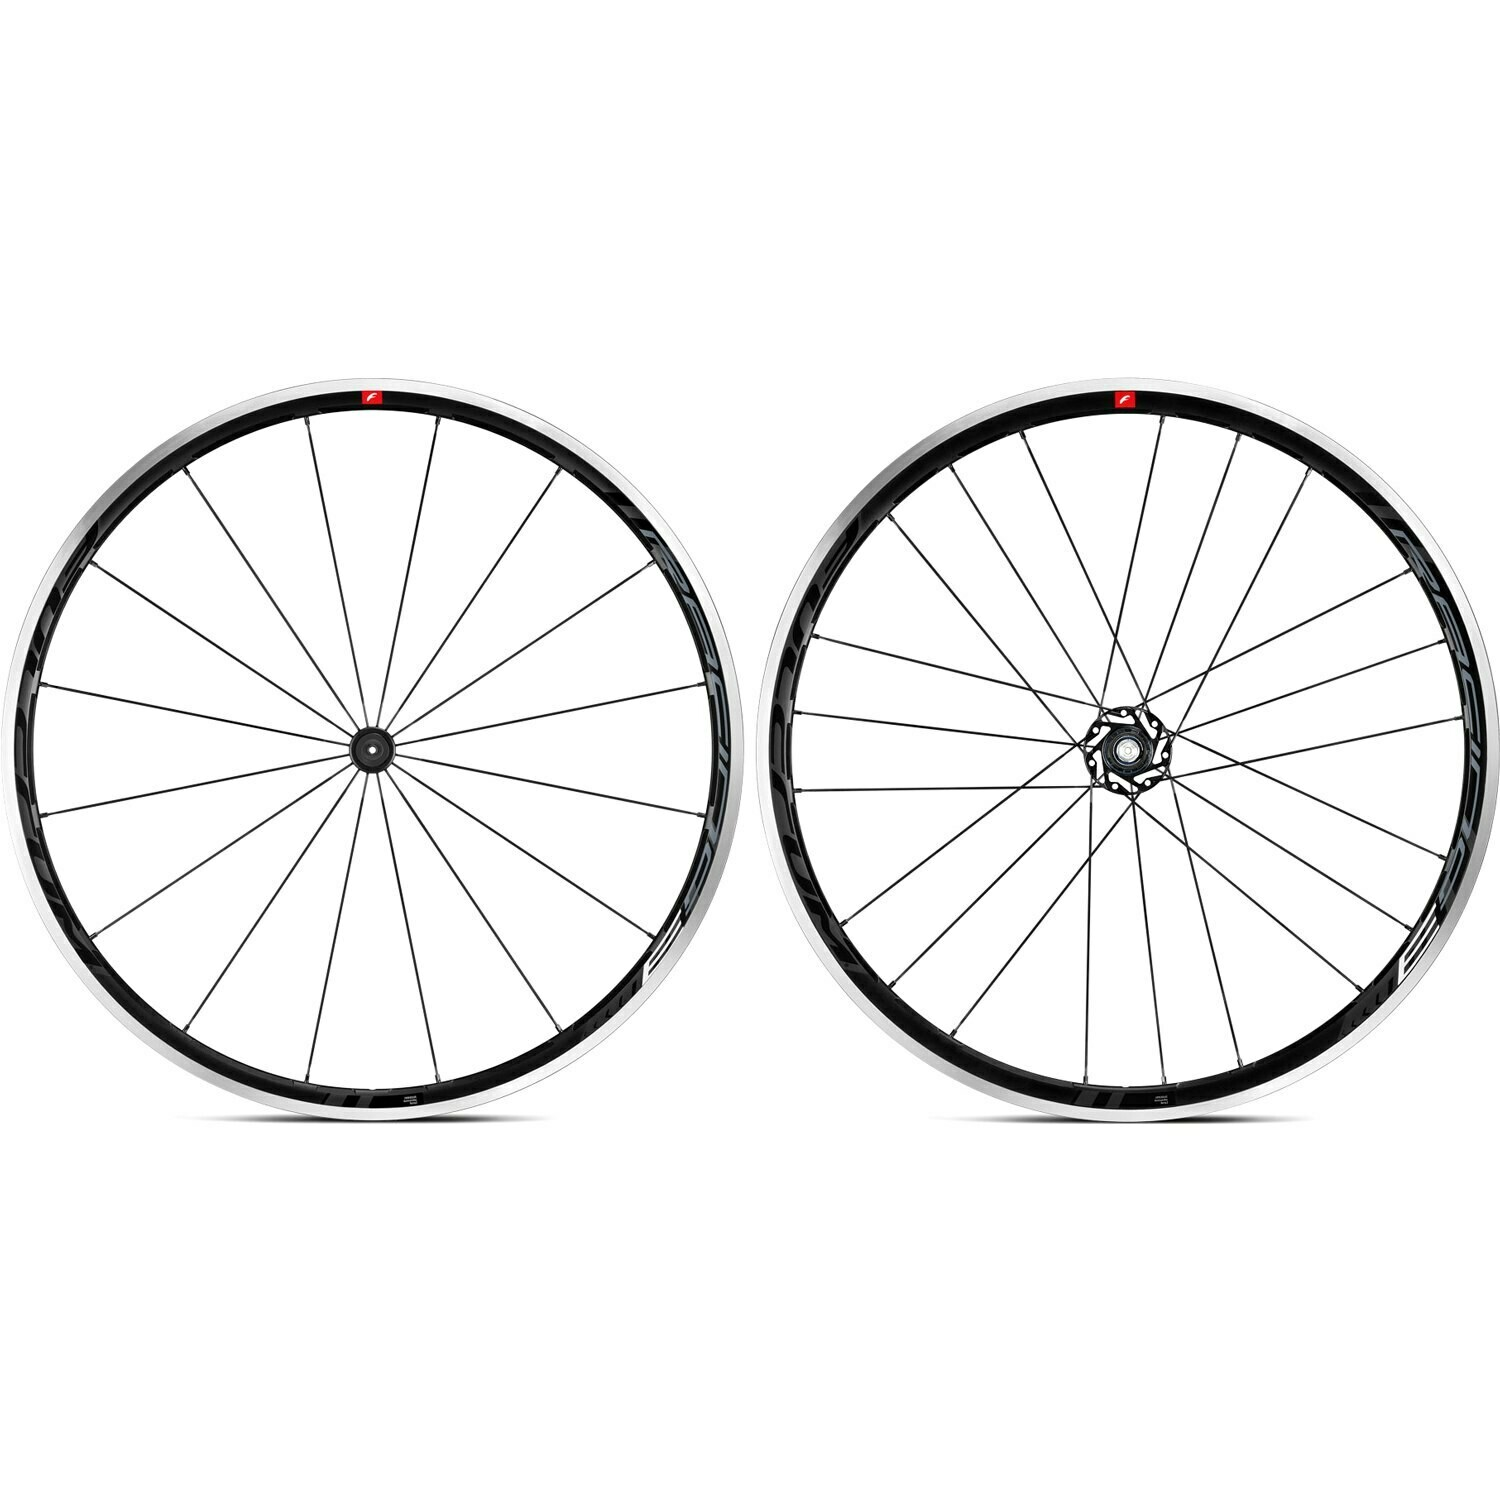 Fulcrum Racing 3 rim brakes clincher